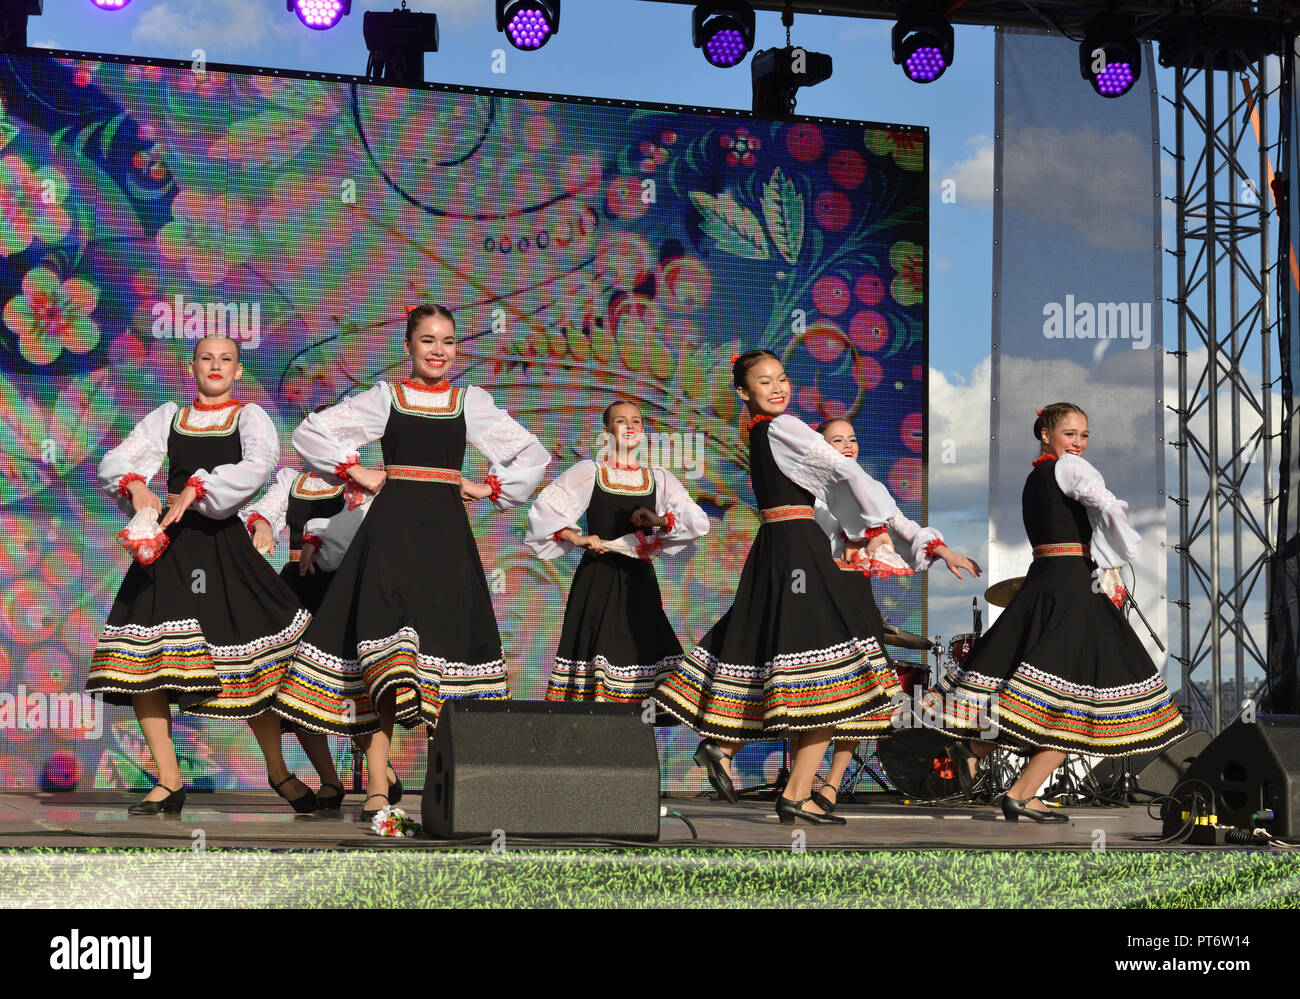 281 Birthday of Vasileostrovsky district. Beautiful concert on street scene for all tourists, passers-by and all who want to watch and listen - Stock Image